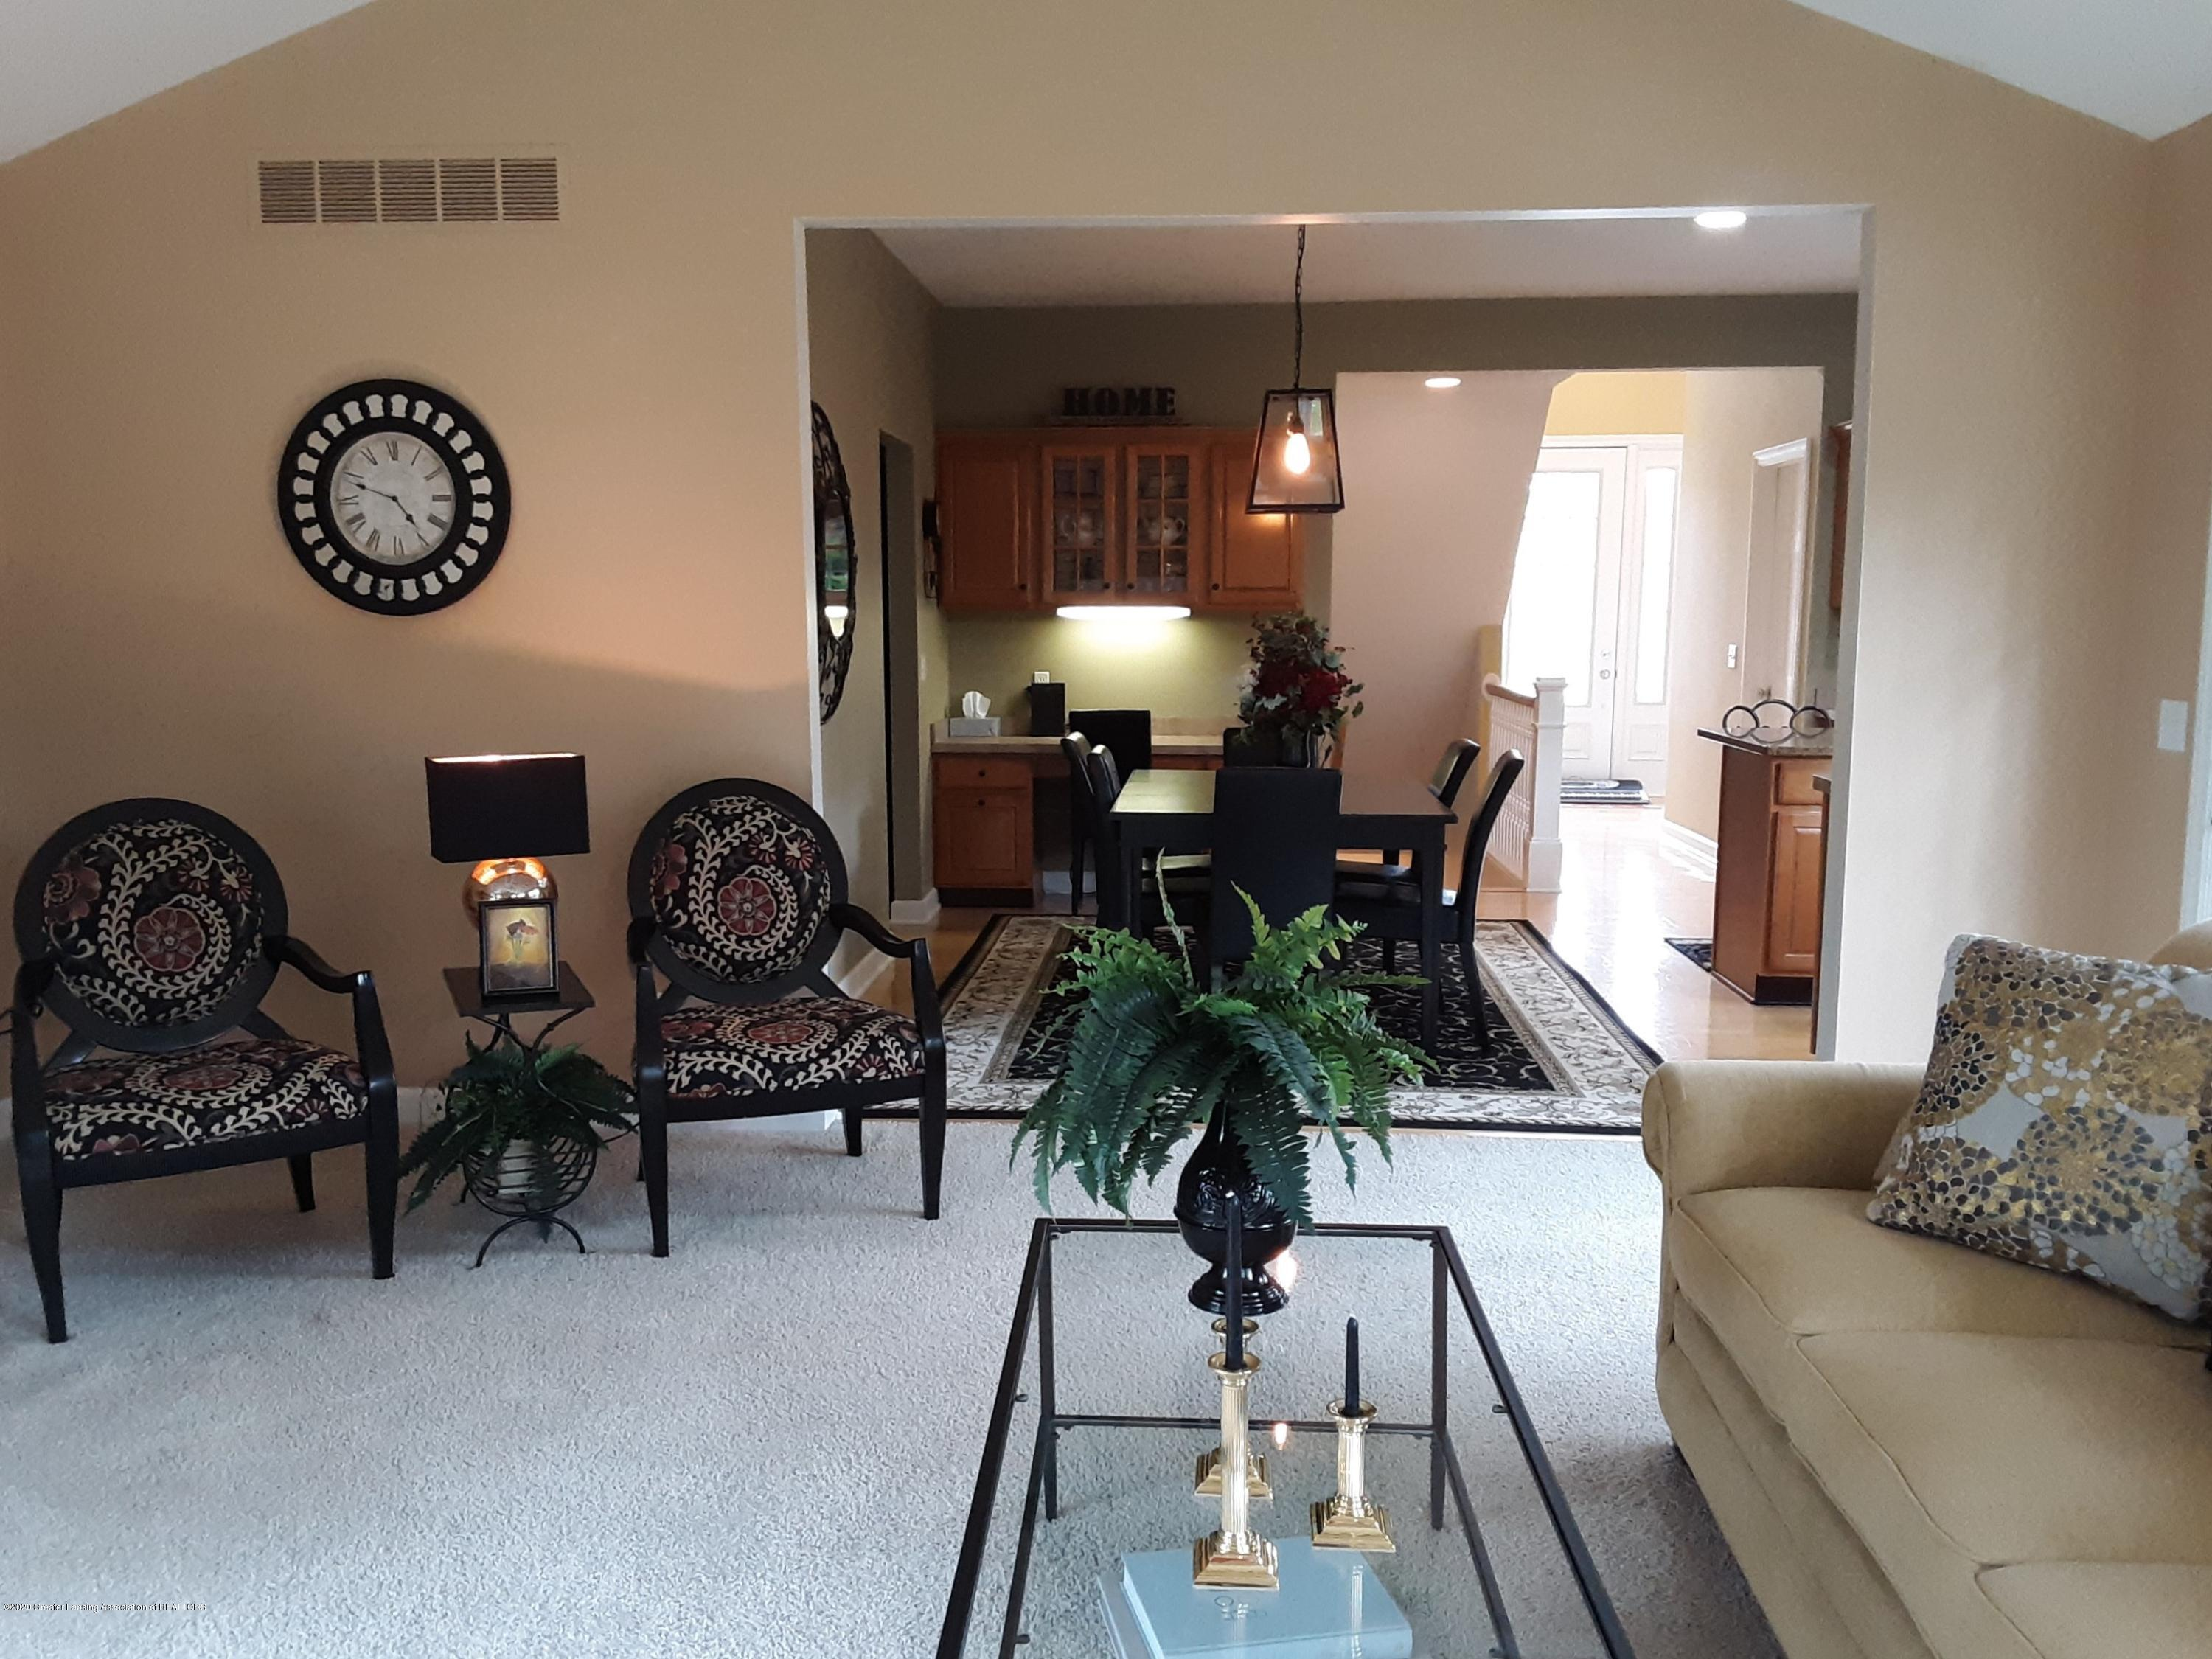 13142 Blaisdell Dr - 14. Great Room to Informal Dining view - 15